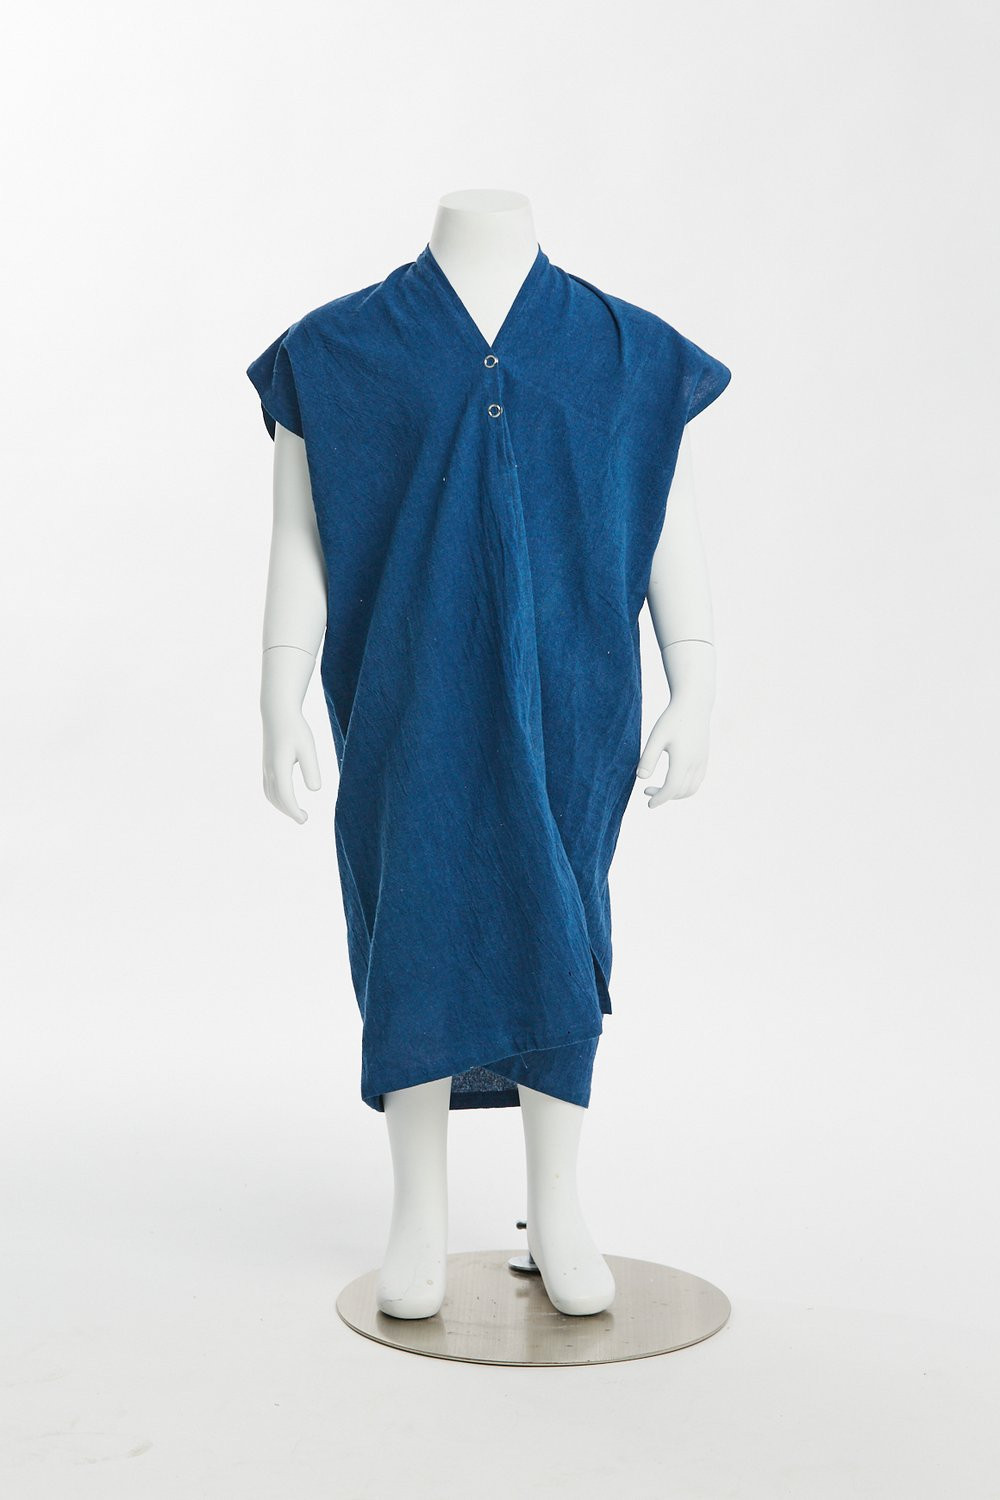 shop the woods miranda bennett everyday dress silk noil linen natural ethical fashion kids zero waste childrens girls baby toddler dark indigo blue